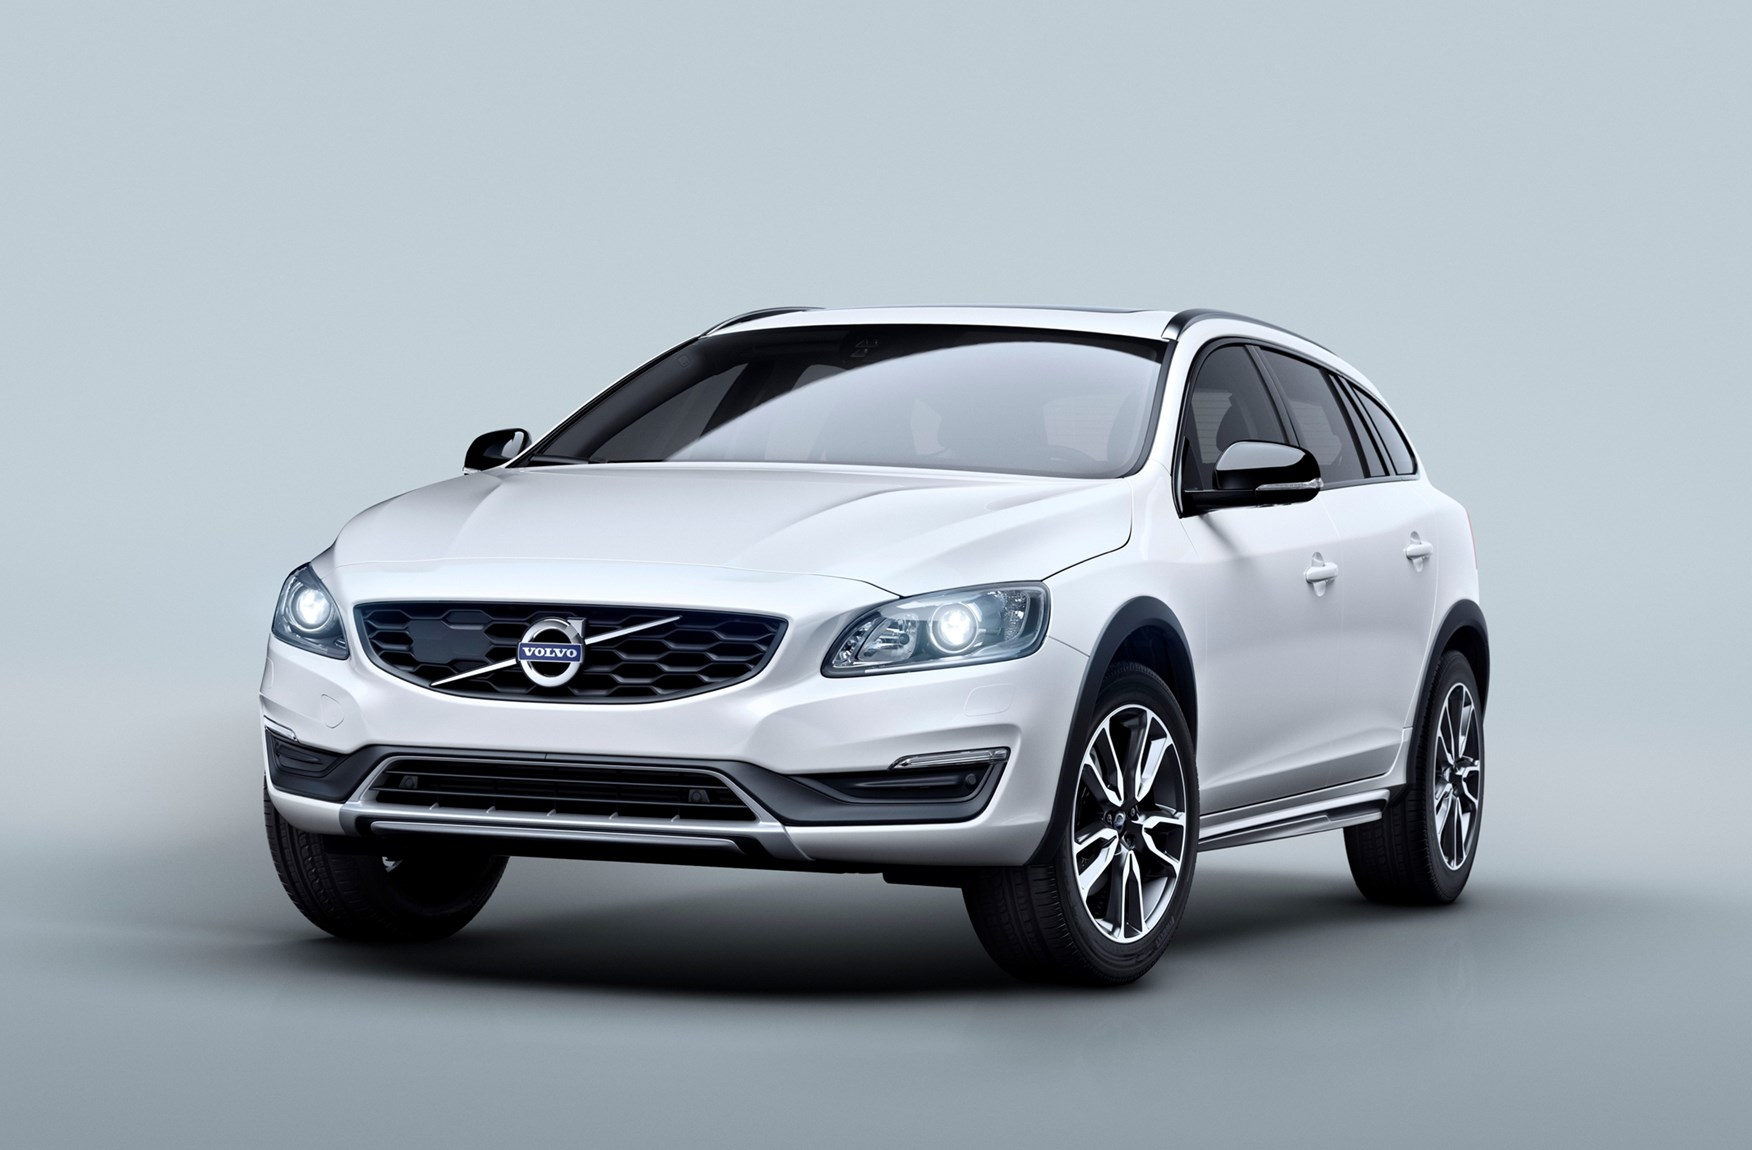 Volvo v60 cross country review 2015 parkers - How Much Is It To Insure